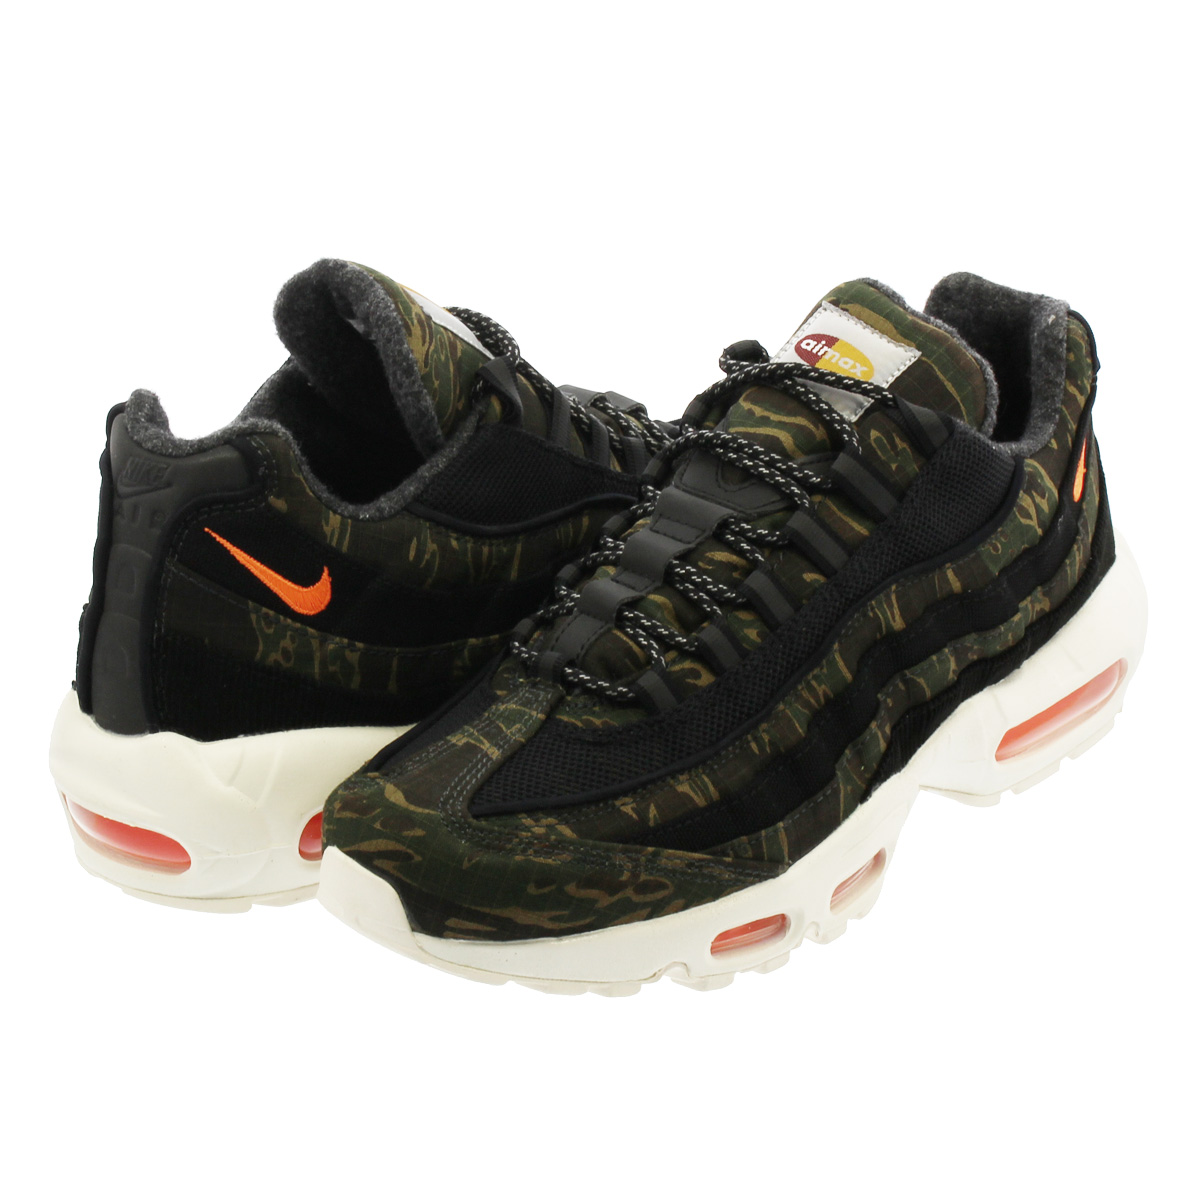 d8bd1ddf238b6 NIKE AIR MAX 95 CARHARTT WIP Kie Ney AMAX 95 car heart BLACK/TOTAL ORANGE  ...